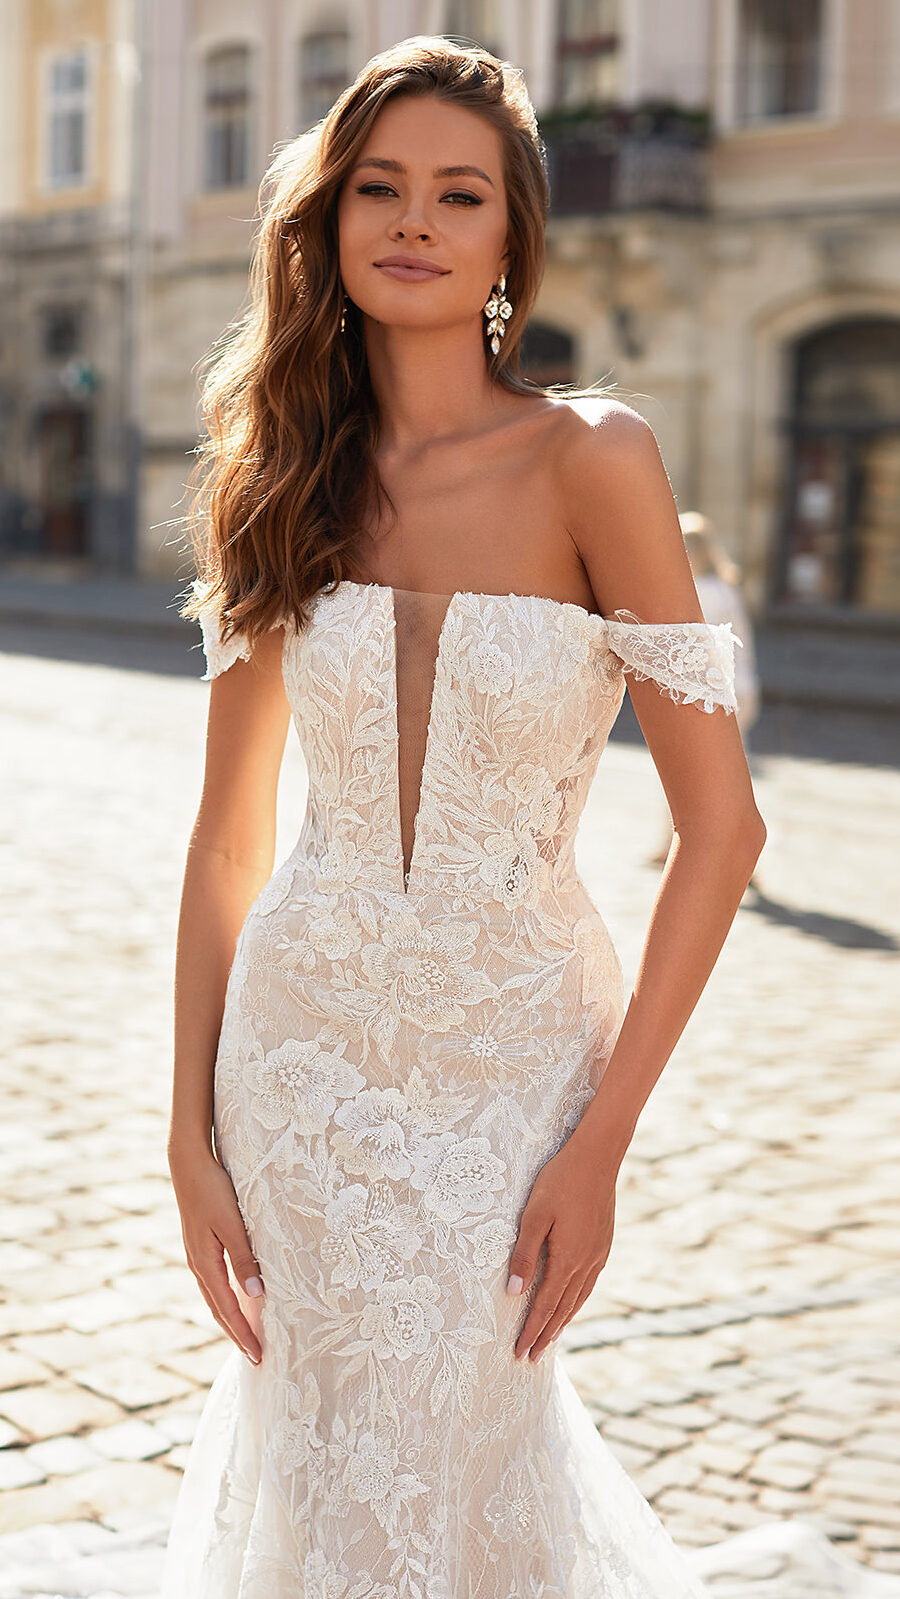 Designer Wedding Dresses by Moonlight Couture 2022 Bridal Collection - H1481